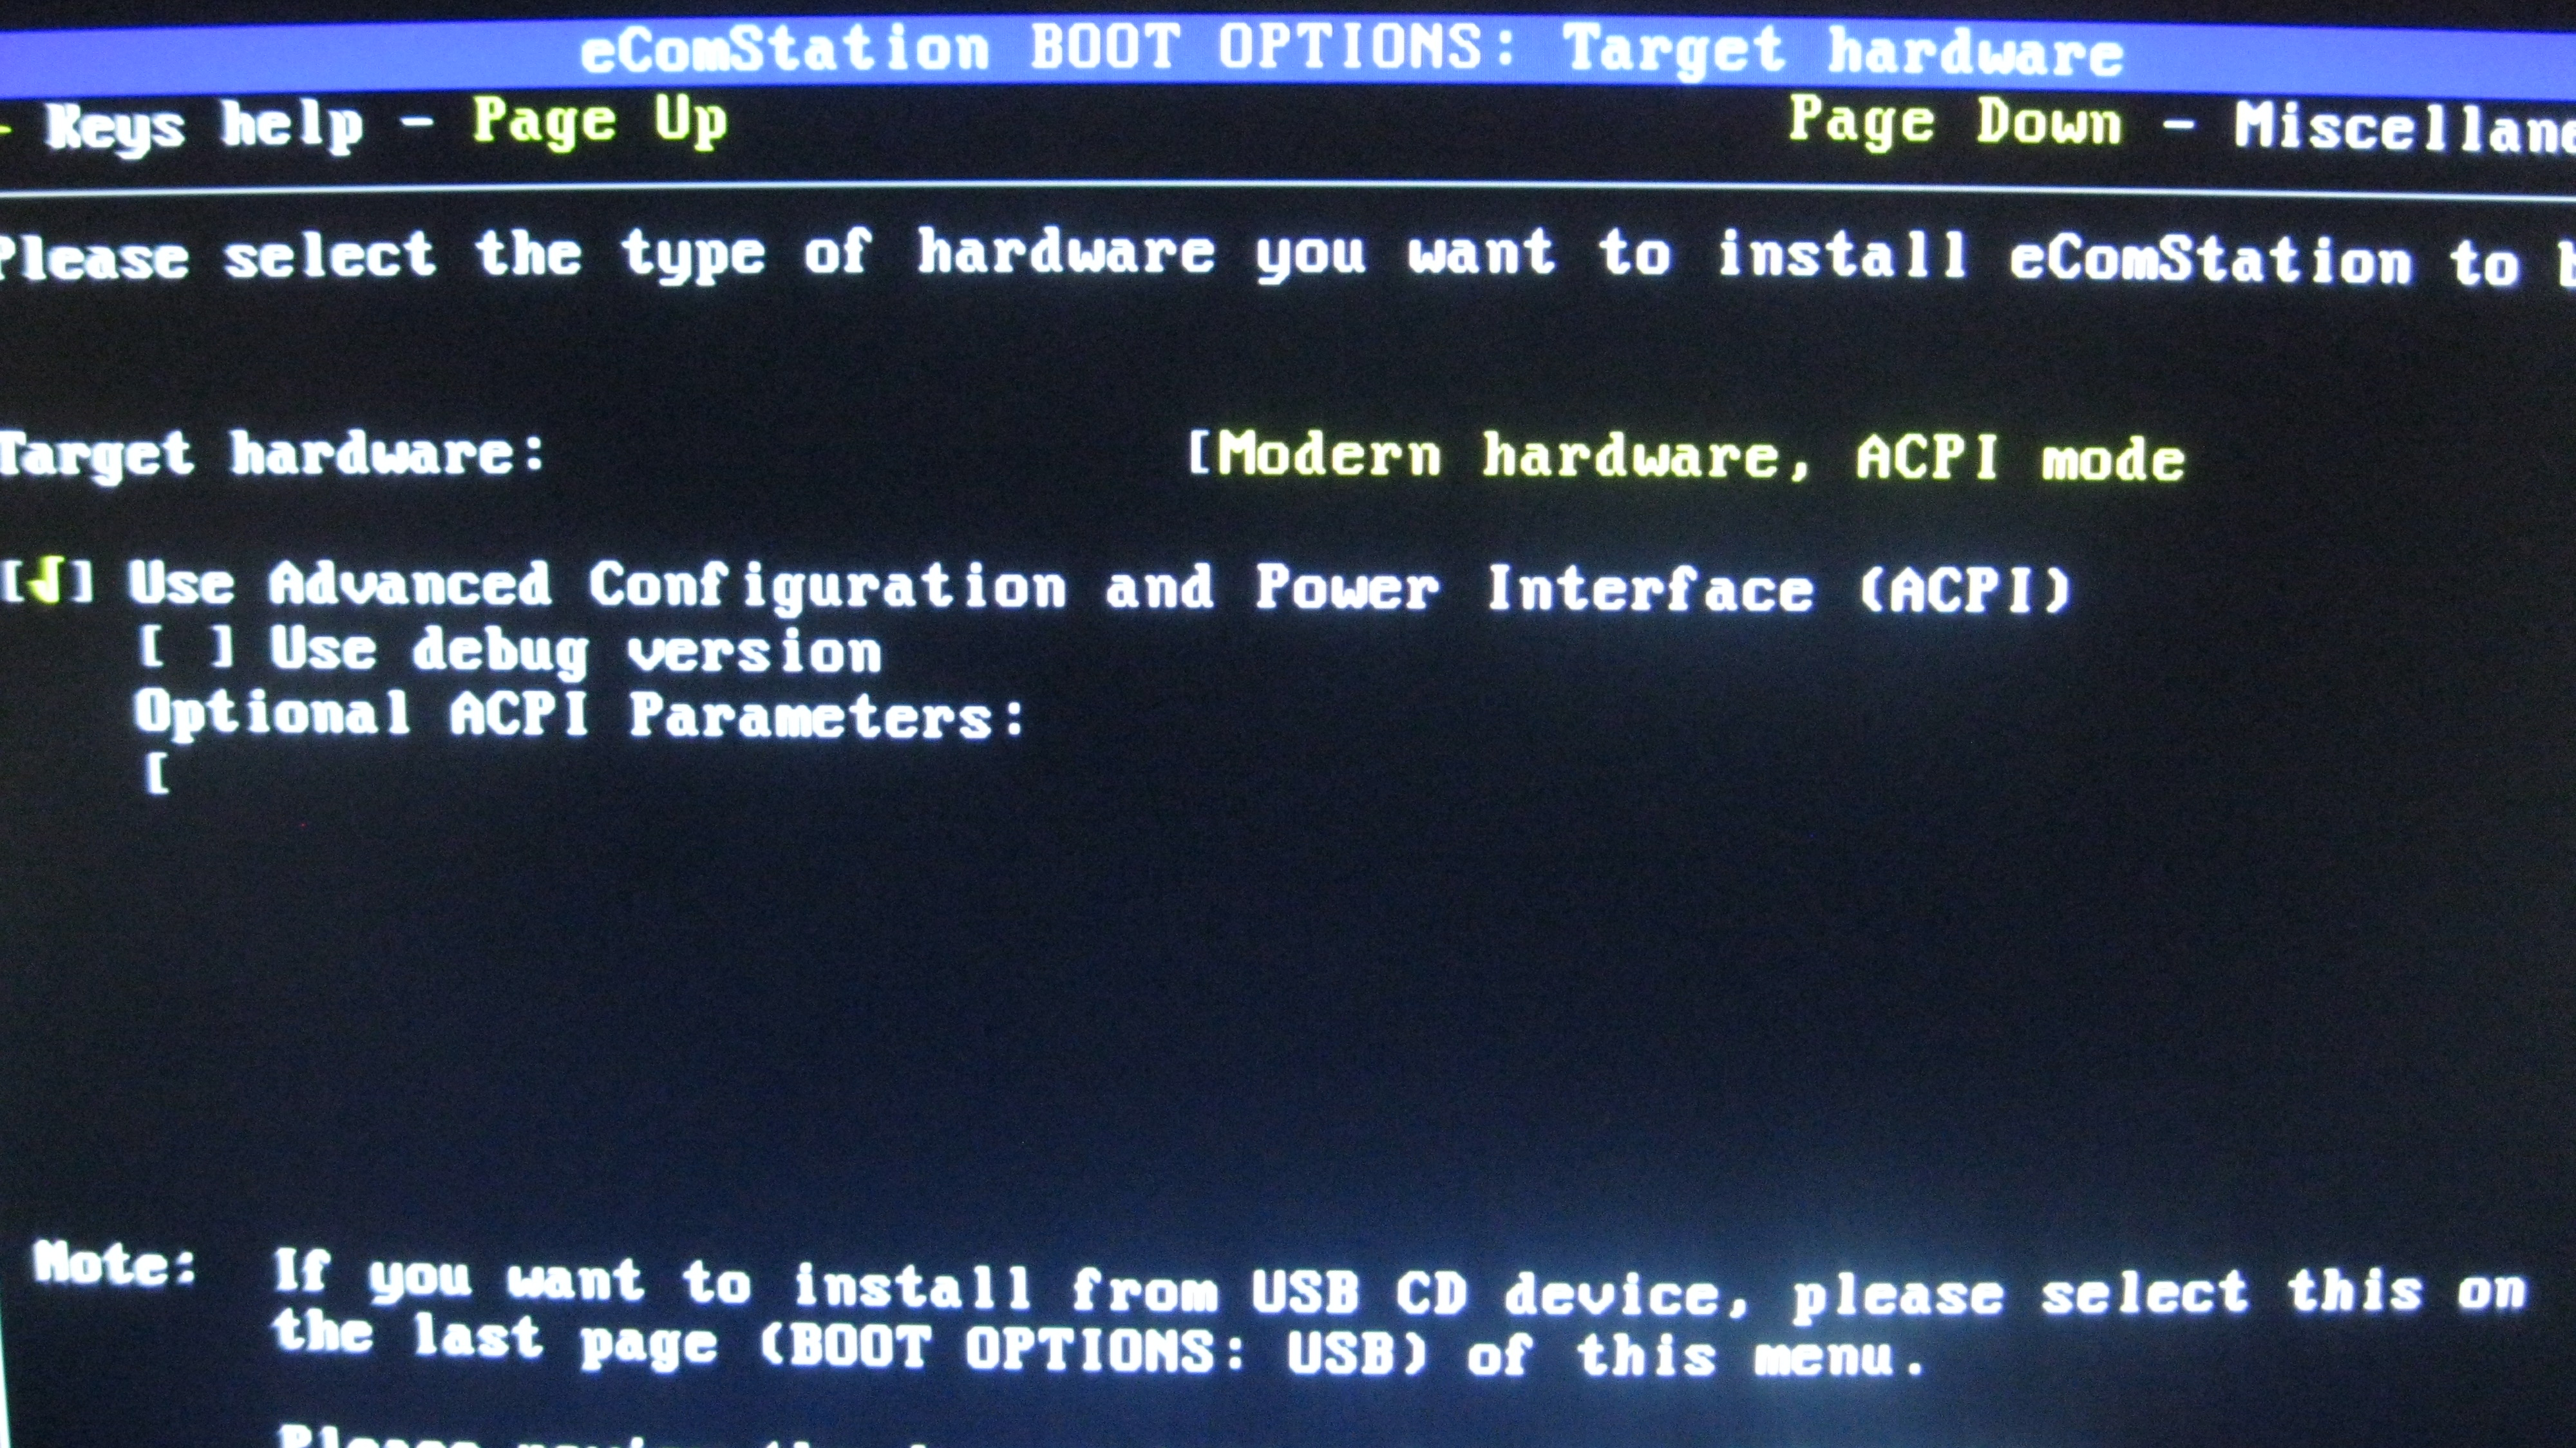 Installing eComStation 2 1 and Windows 8 with Dual Boot